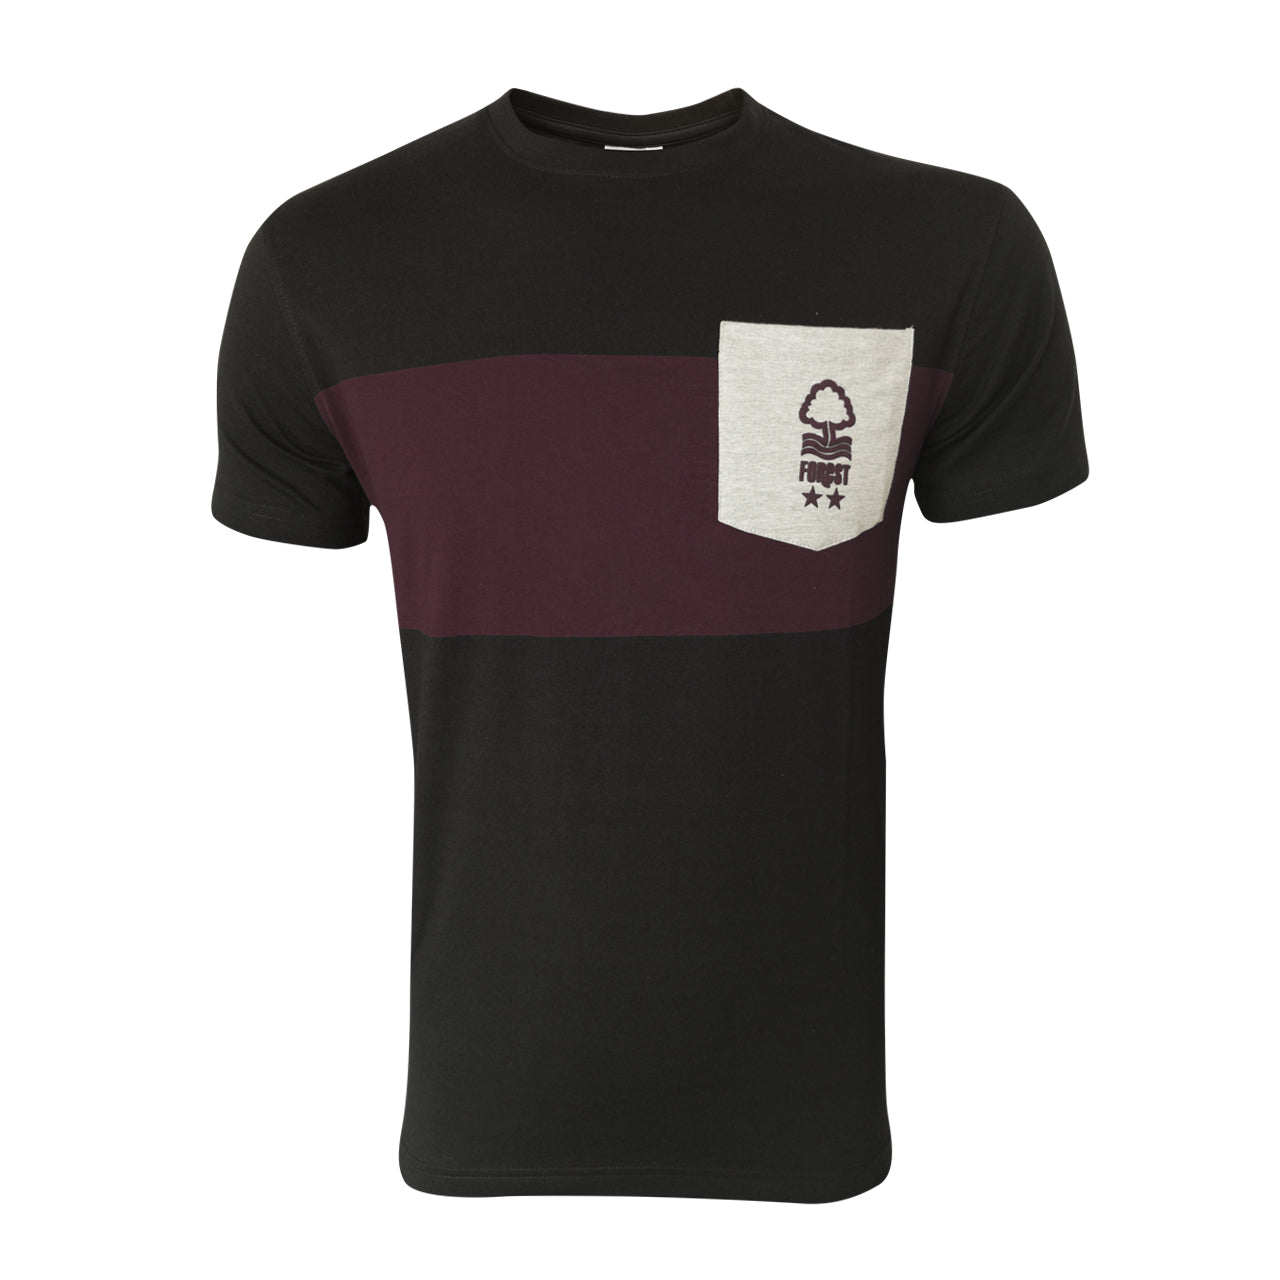 NFFC Mens Black Pocket T-Shirt